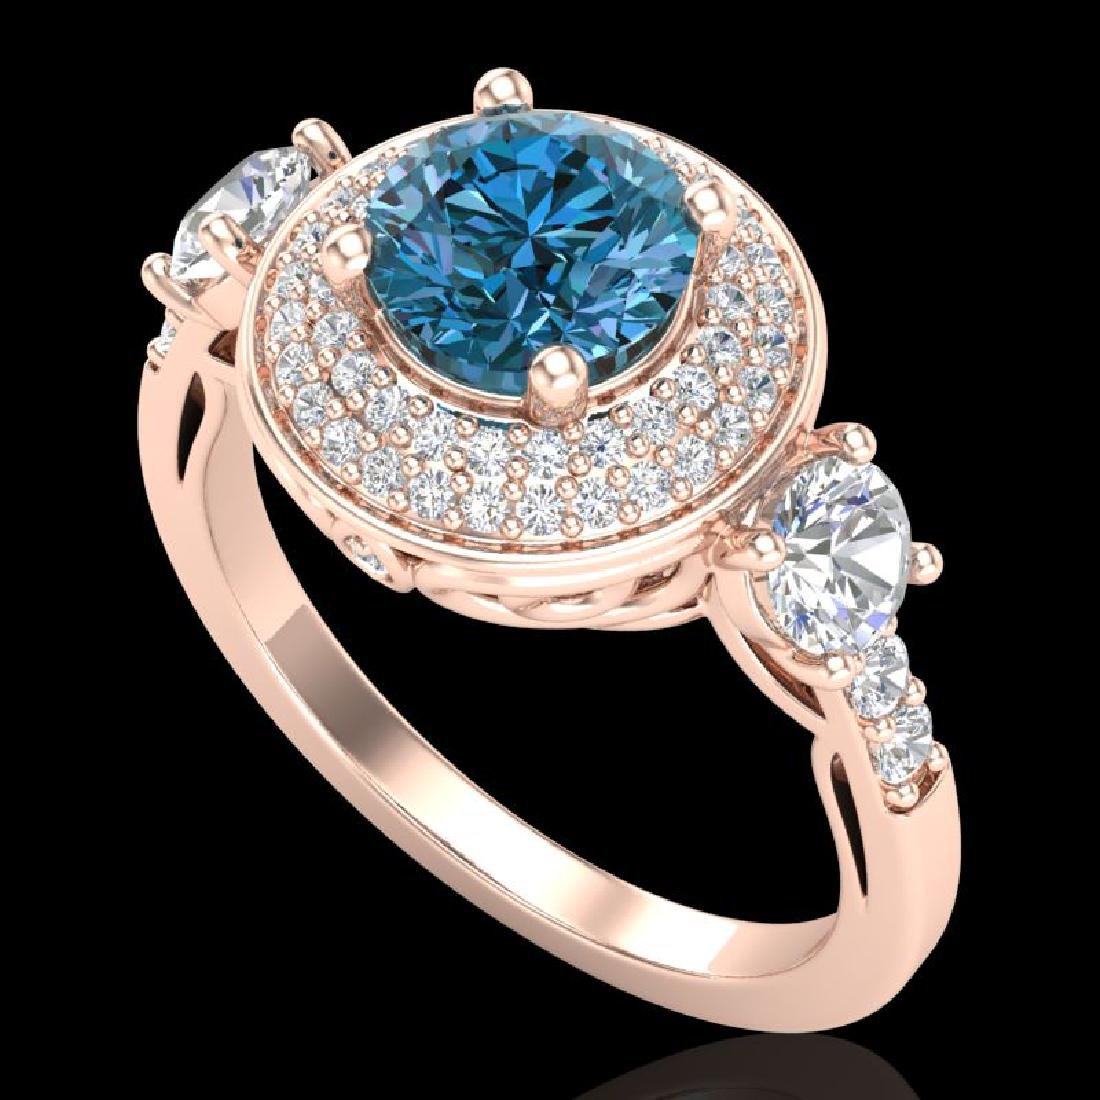 2.05 CTW Intense Blue Diamond Solitaire Art Deco 3